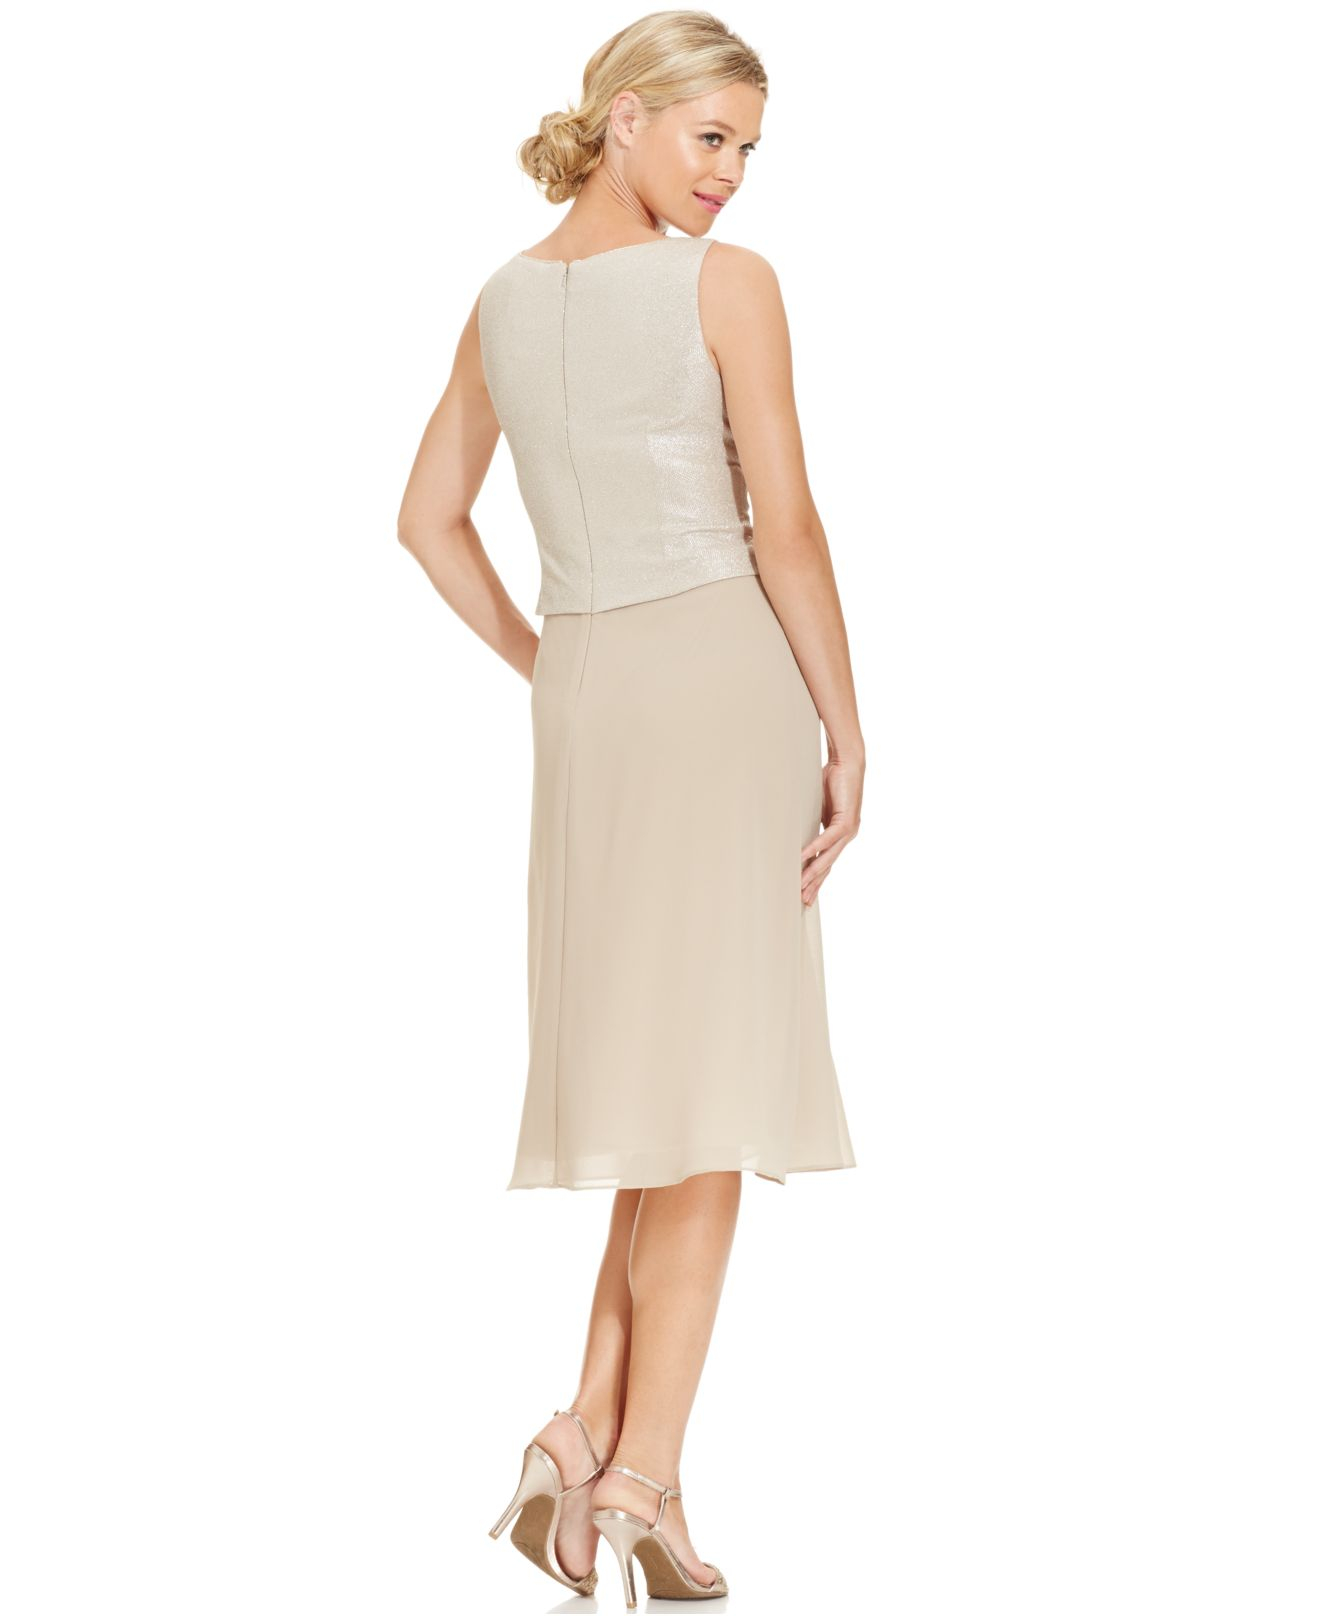 5771275a51c Petite Cocktail Dresses With Jackets - Data Dynamic AG